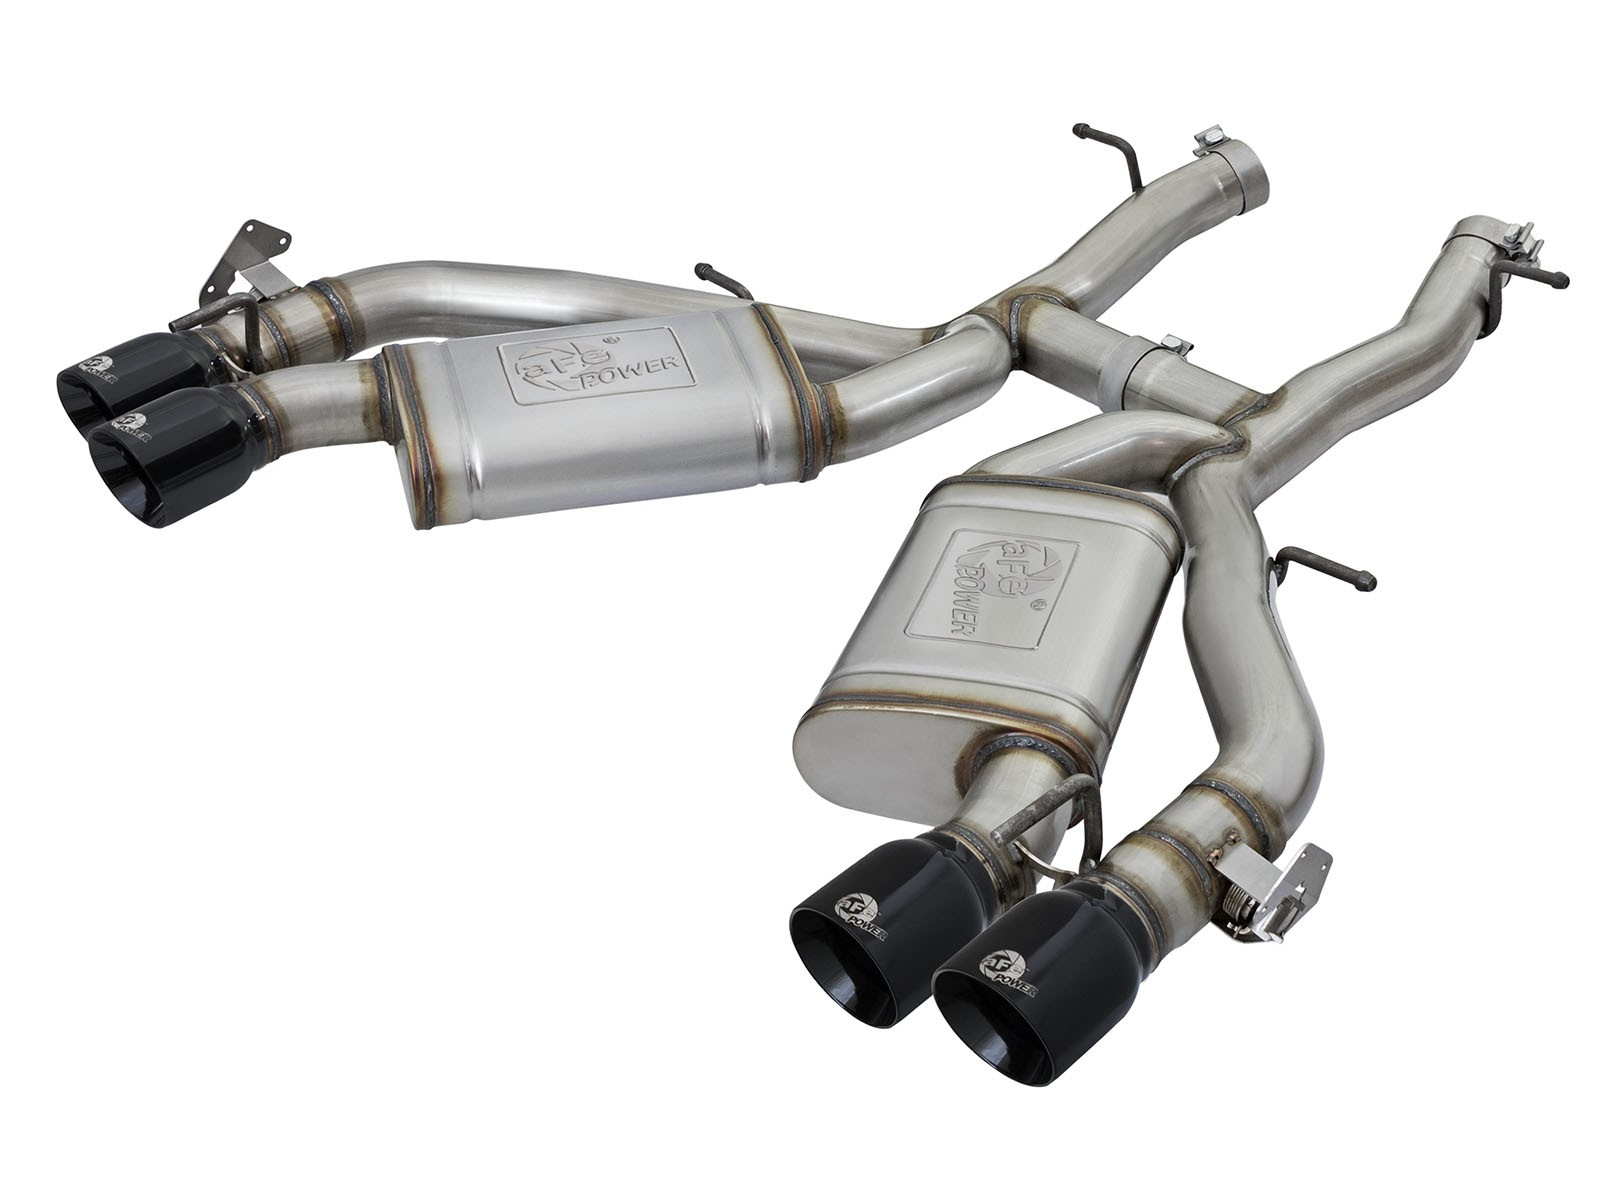 "MACH Force-Xp 3"" 304 Stainless Steel Axle-Back Exhaust System"